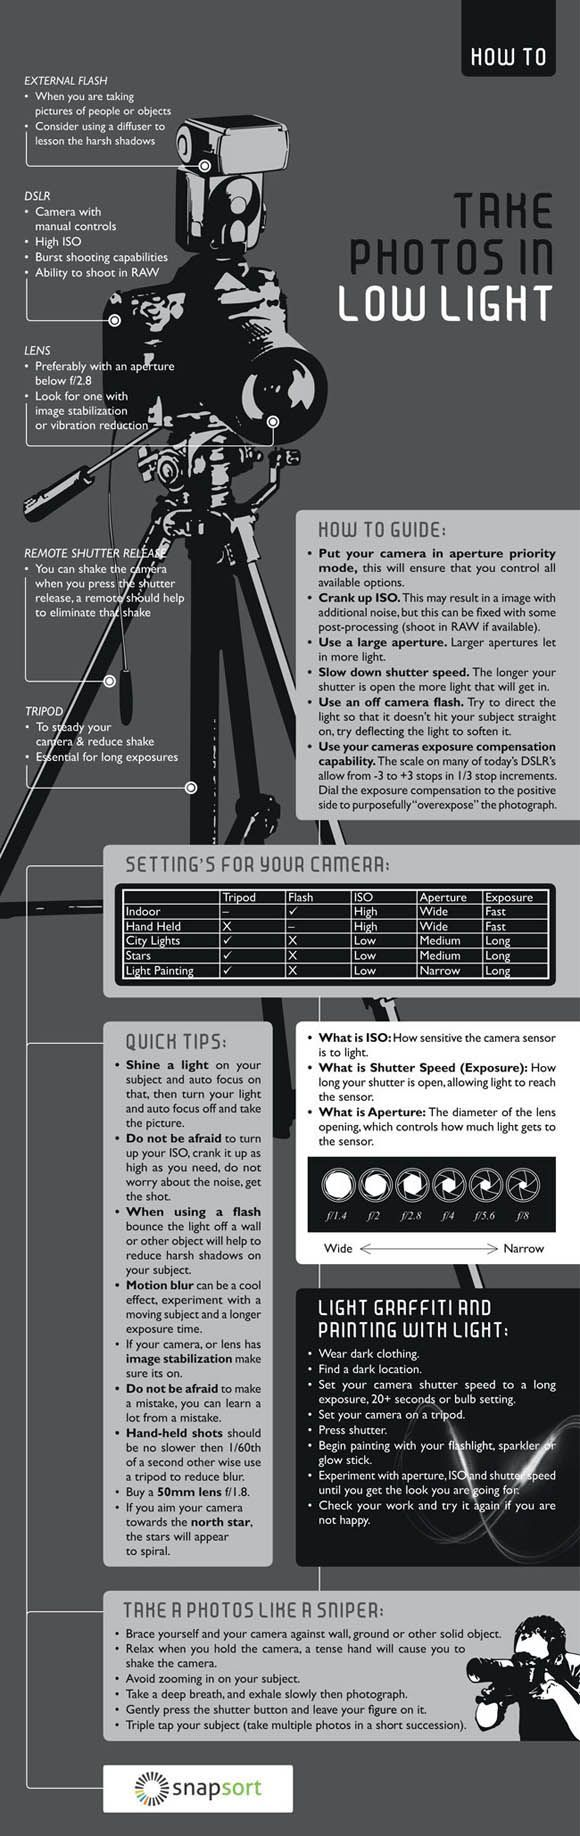 Everyone loves cheat sheets, and photographers are no exception. Squeezed into a set of short tips, schemes, and definitions, a cheat sheet is a quick way to le